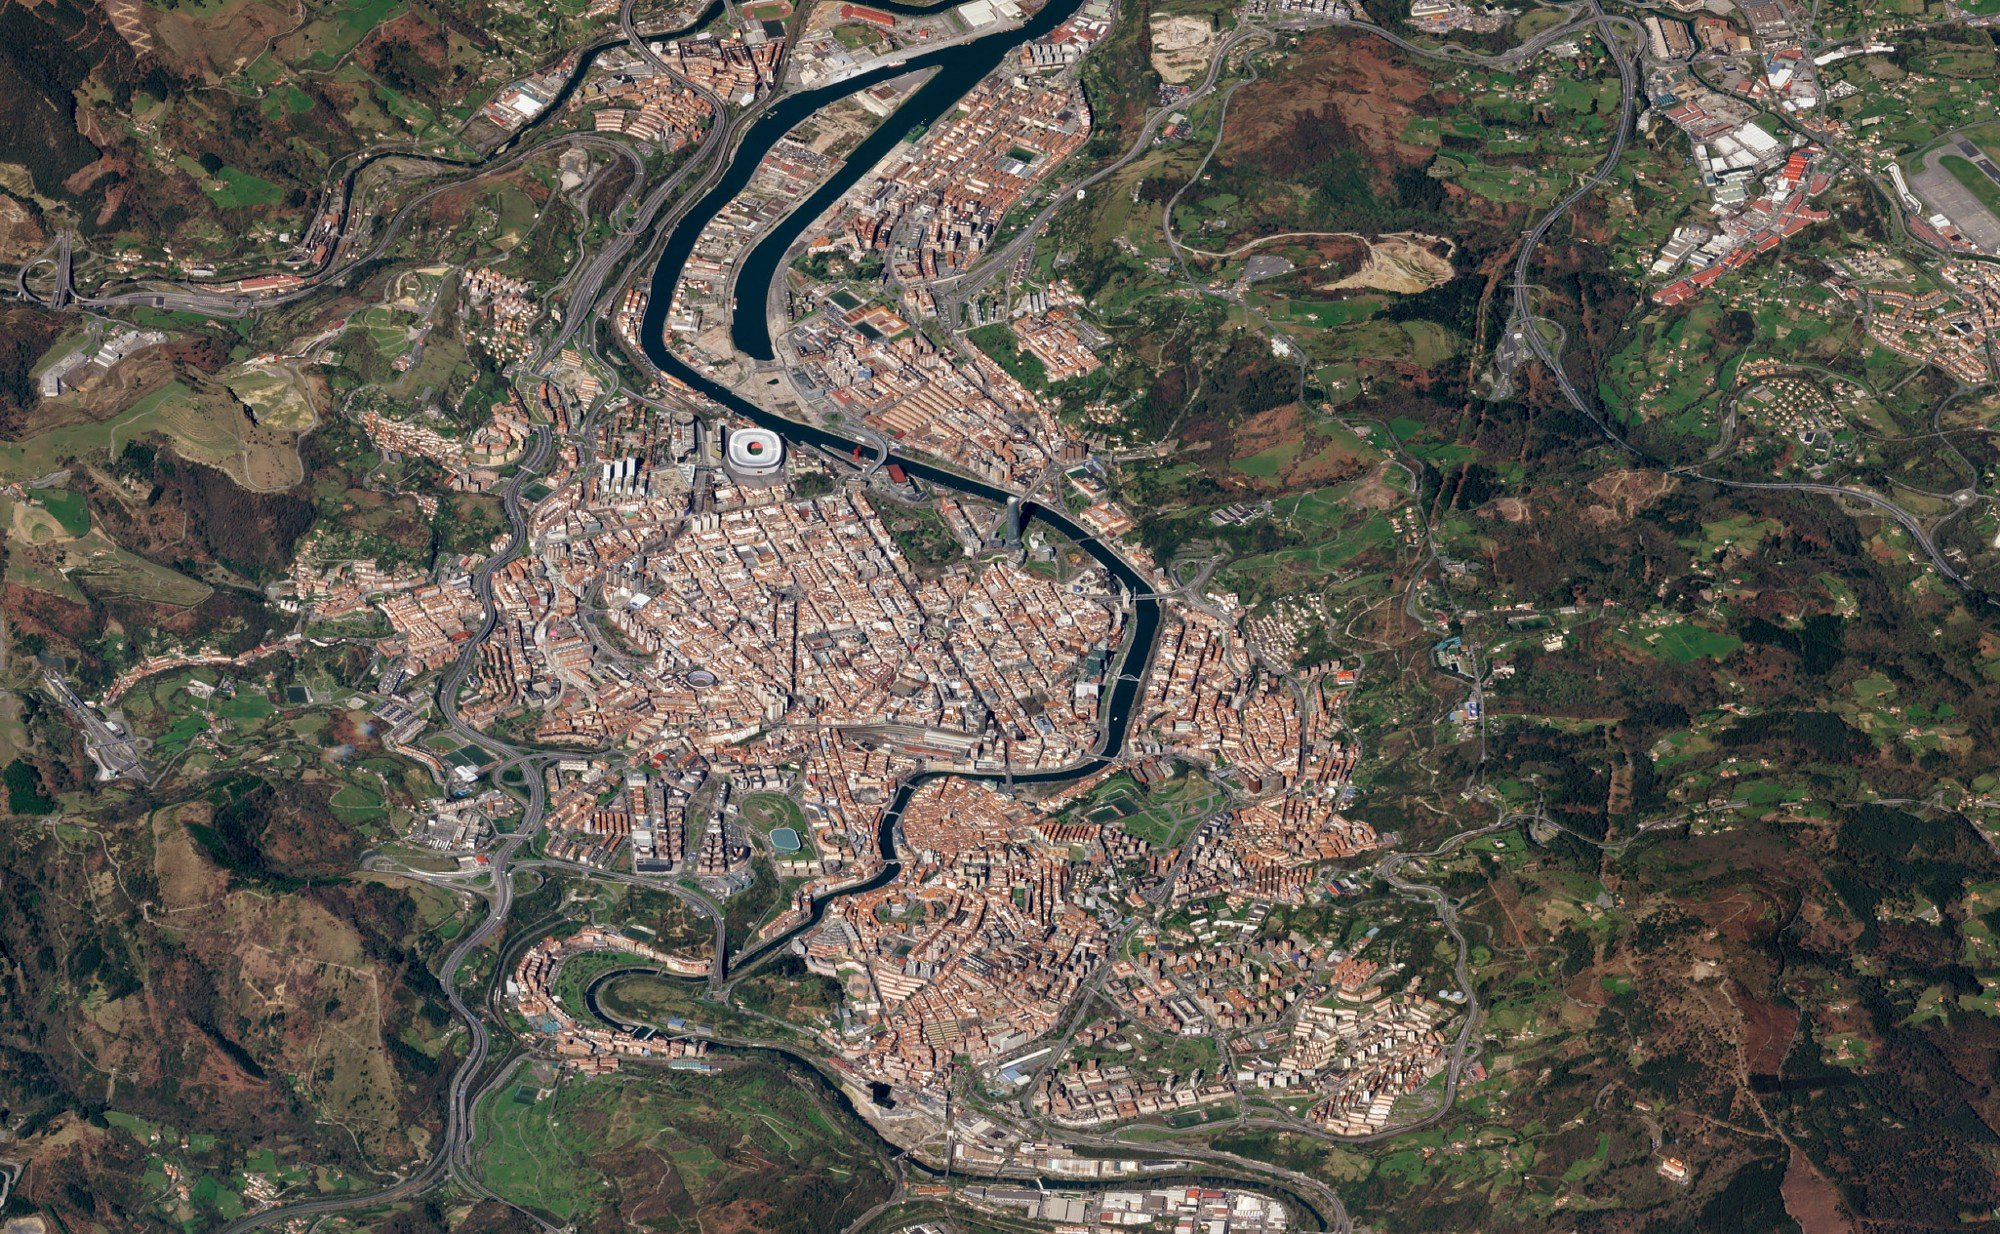 Bilbao, Spain. March 13, 2018. Image ©2018 Planet Labs, Inc. cc-by-sa4.0.